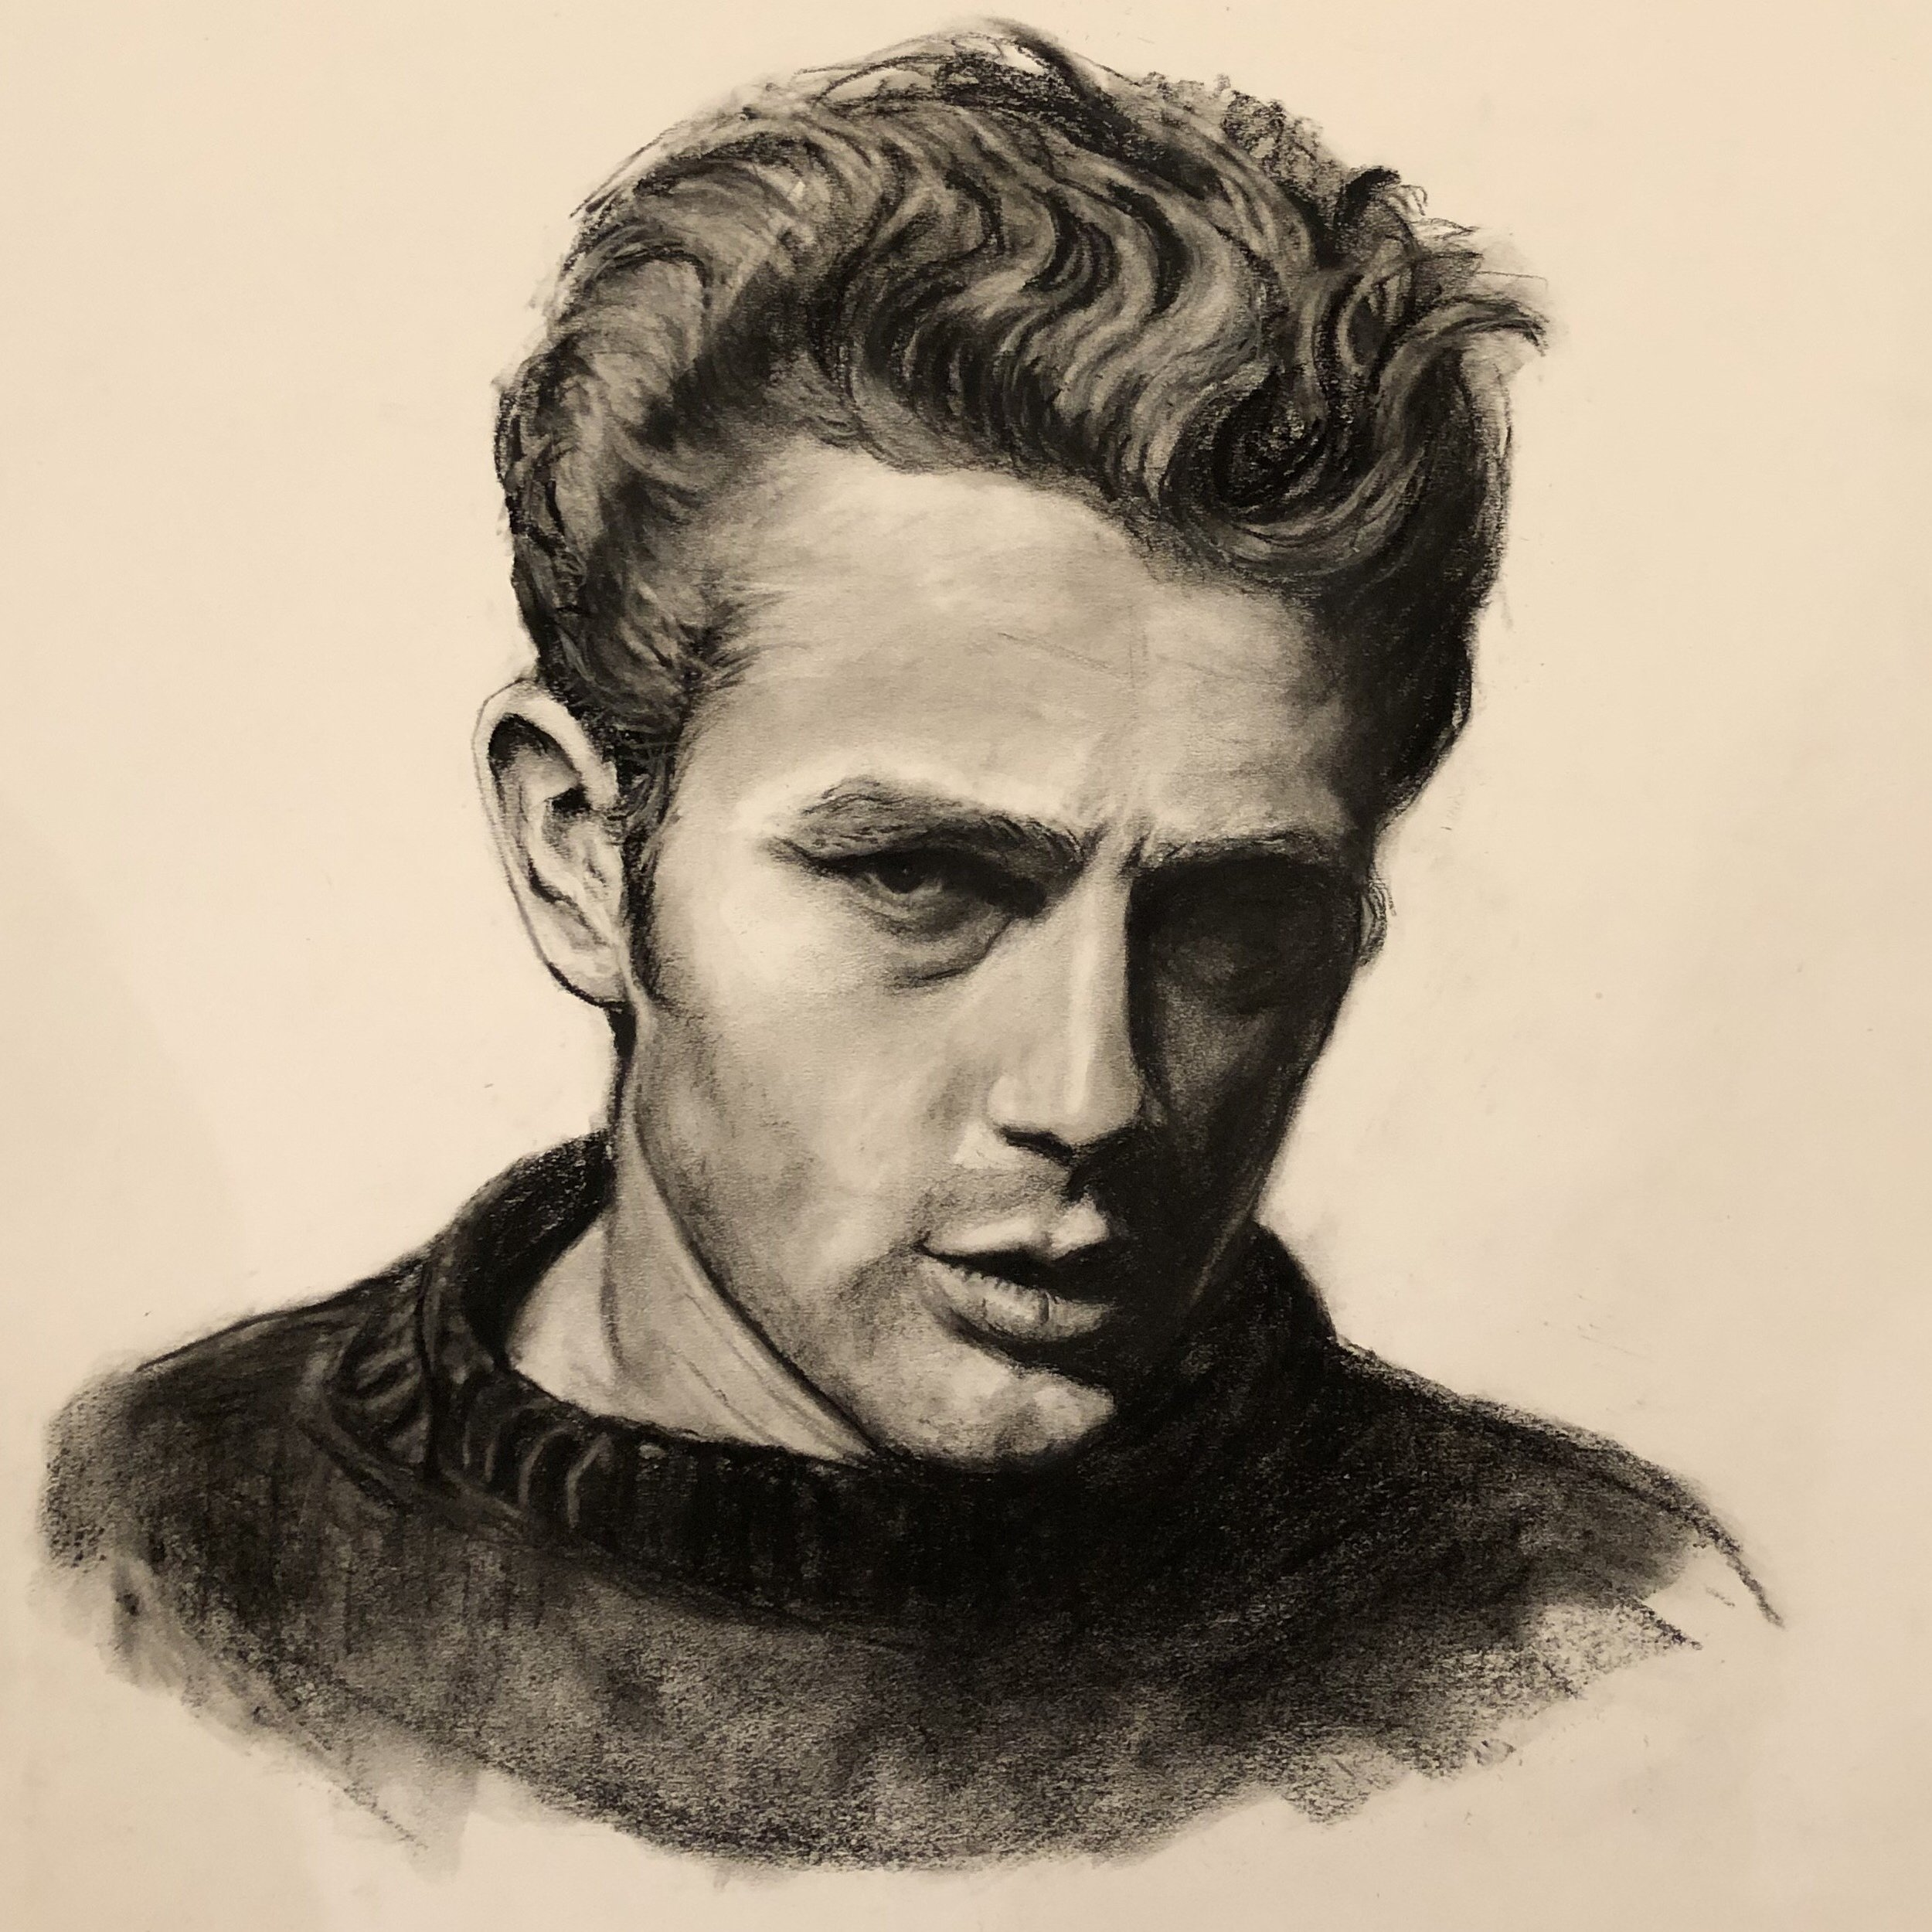 Jimmy Dean, Charcoal on pressed paper, 18x24